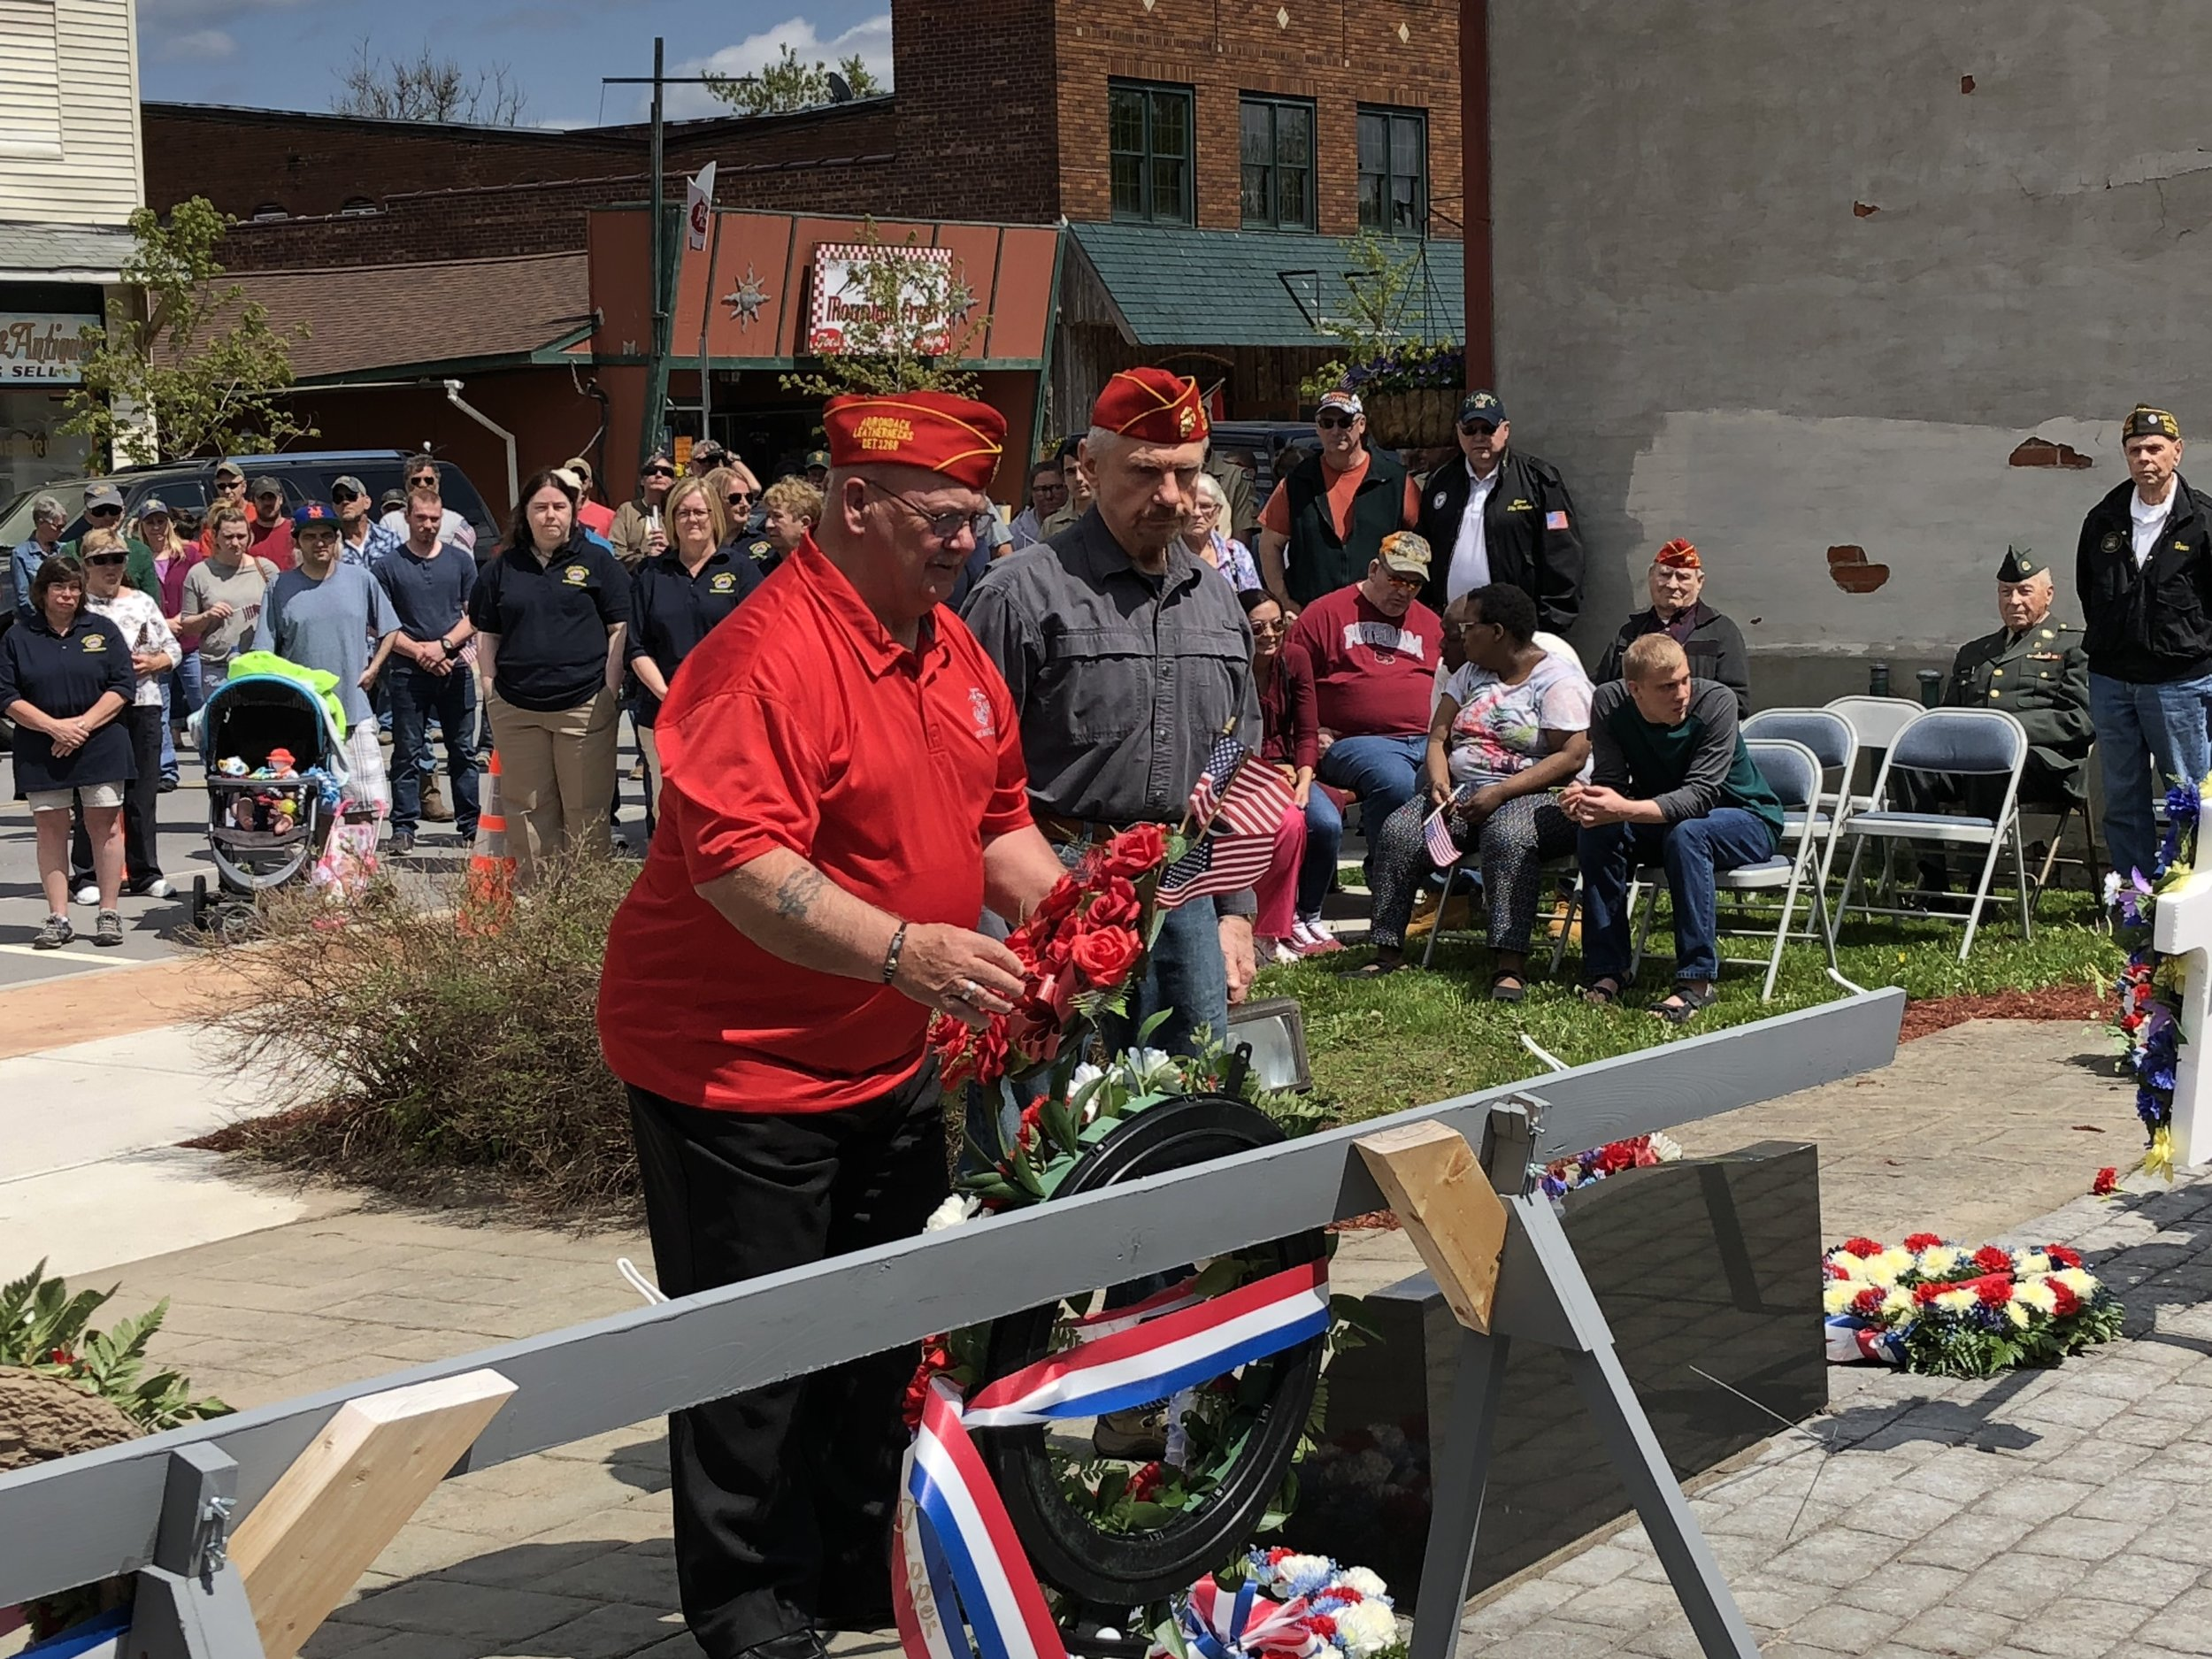 Marine veterans Leon LeBlanc and Craig Bowman presented a wreath on behalf of the Adirondack Leathernecks Marine Corp League Monday.